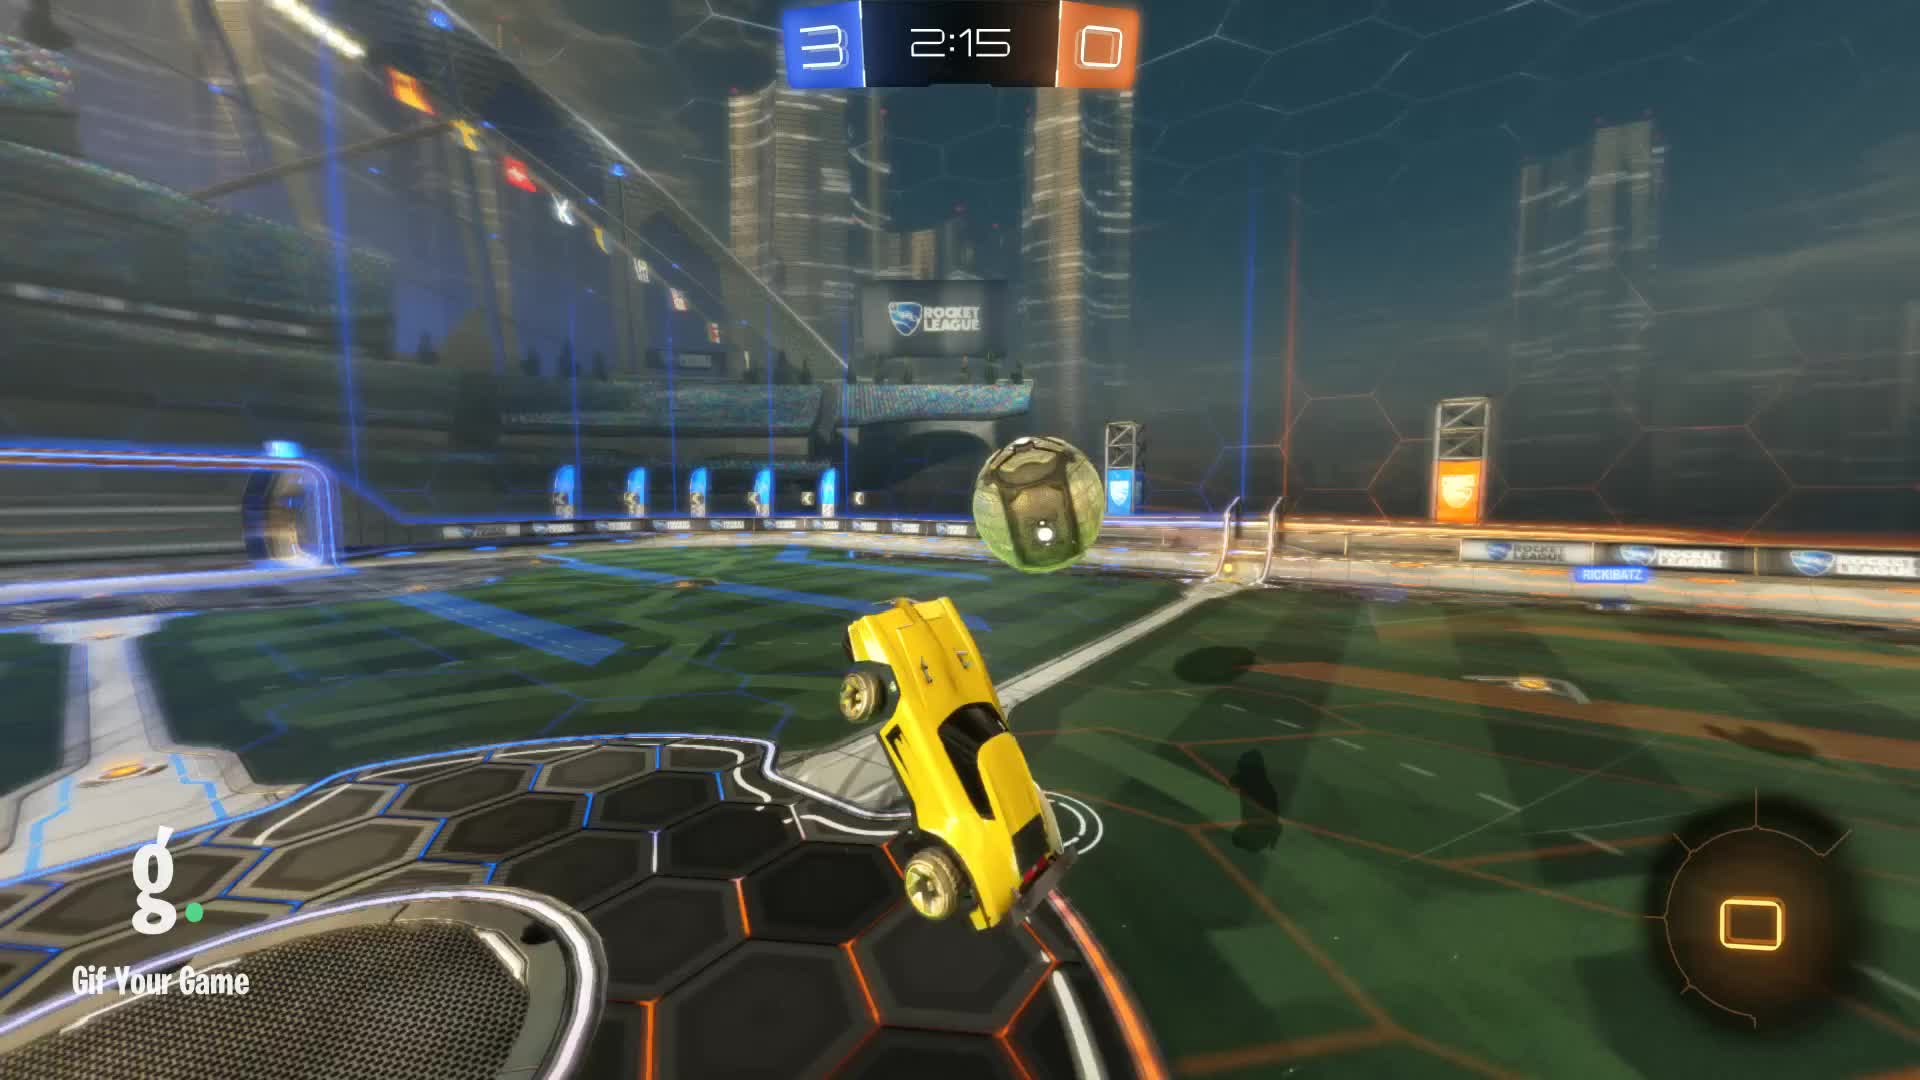 Gif Your Game, GifYourGame, Goal, Rocket League, RocketLeague, Wabbadabba, Goal 4: Wabbadabba GIFs